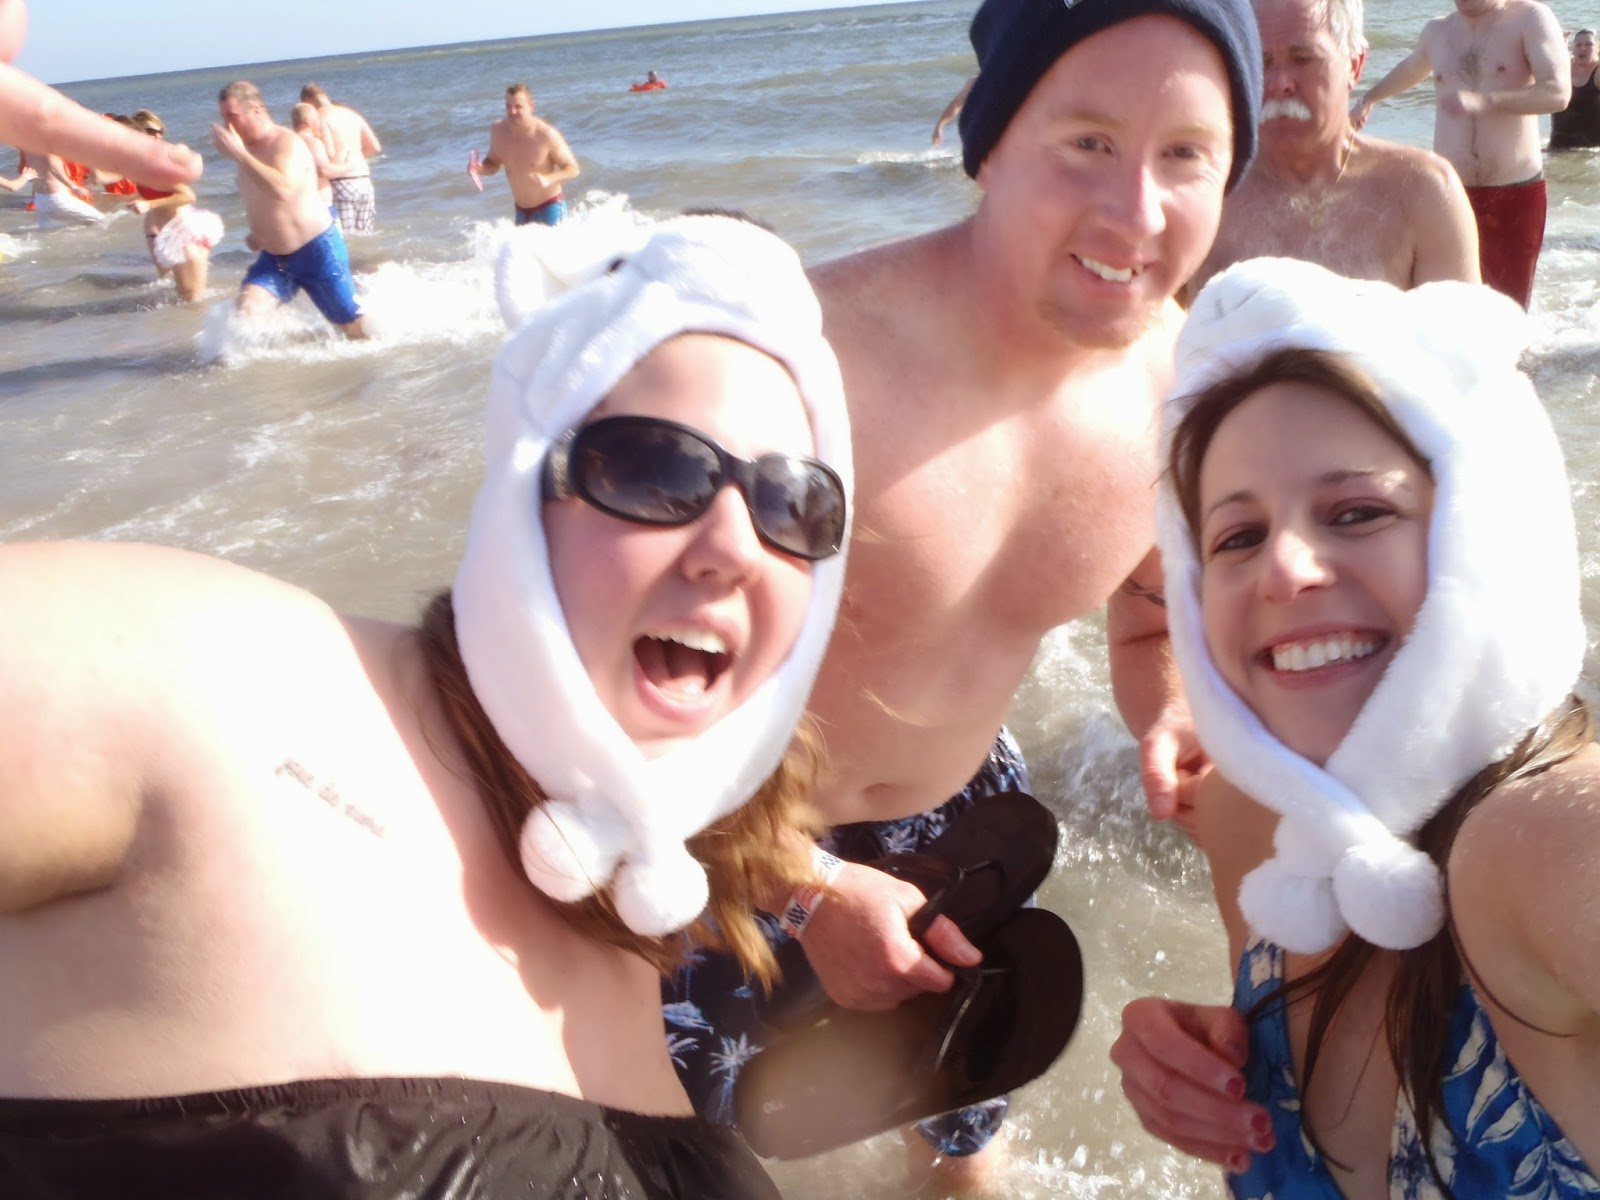 Polar Bear plunge NJ Selfie